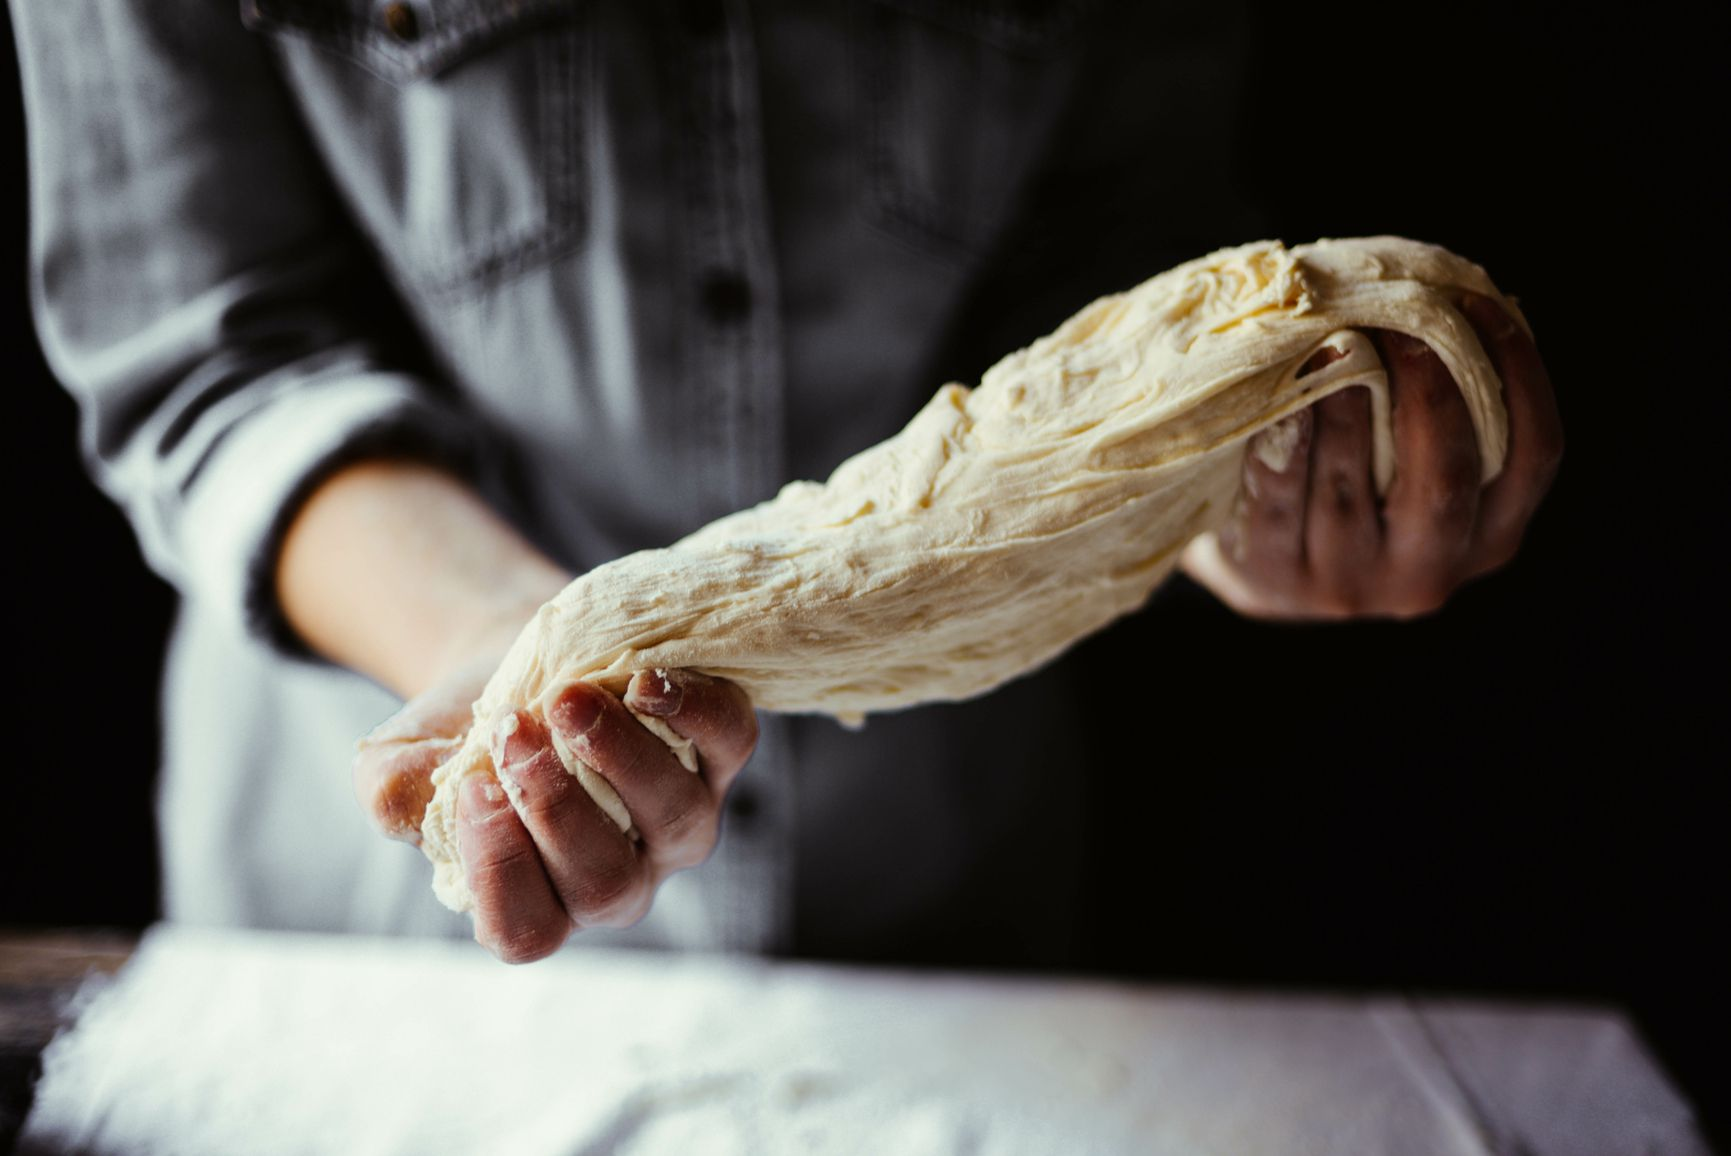 Learn More About Gluten and Its Role in Baking